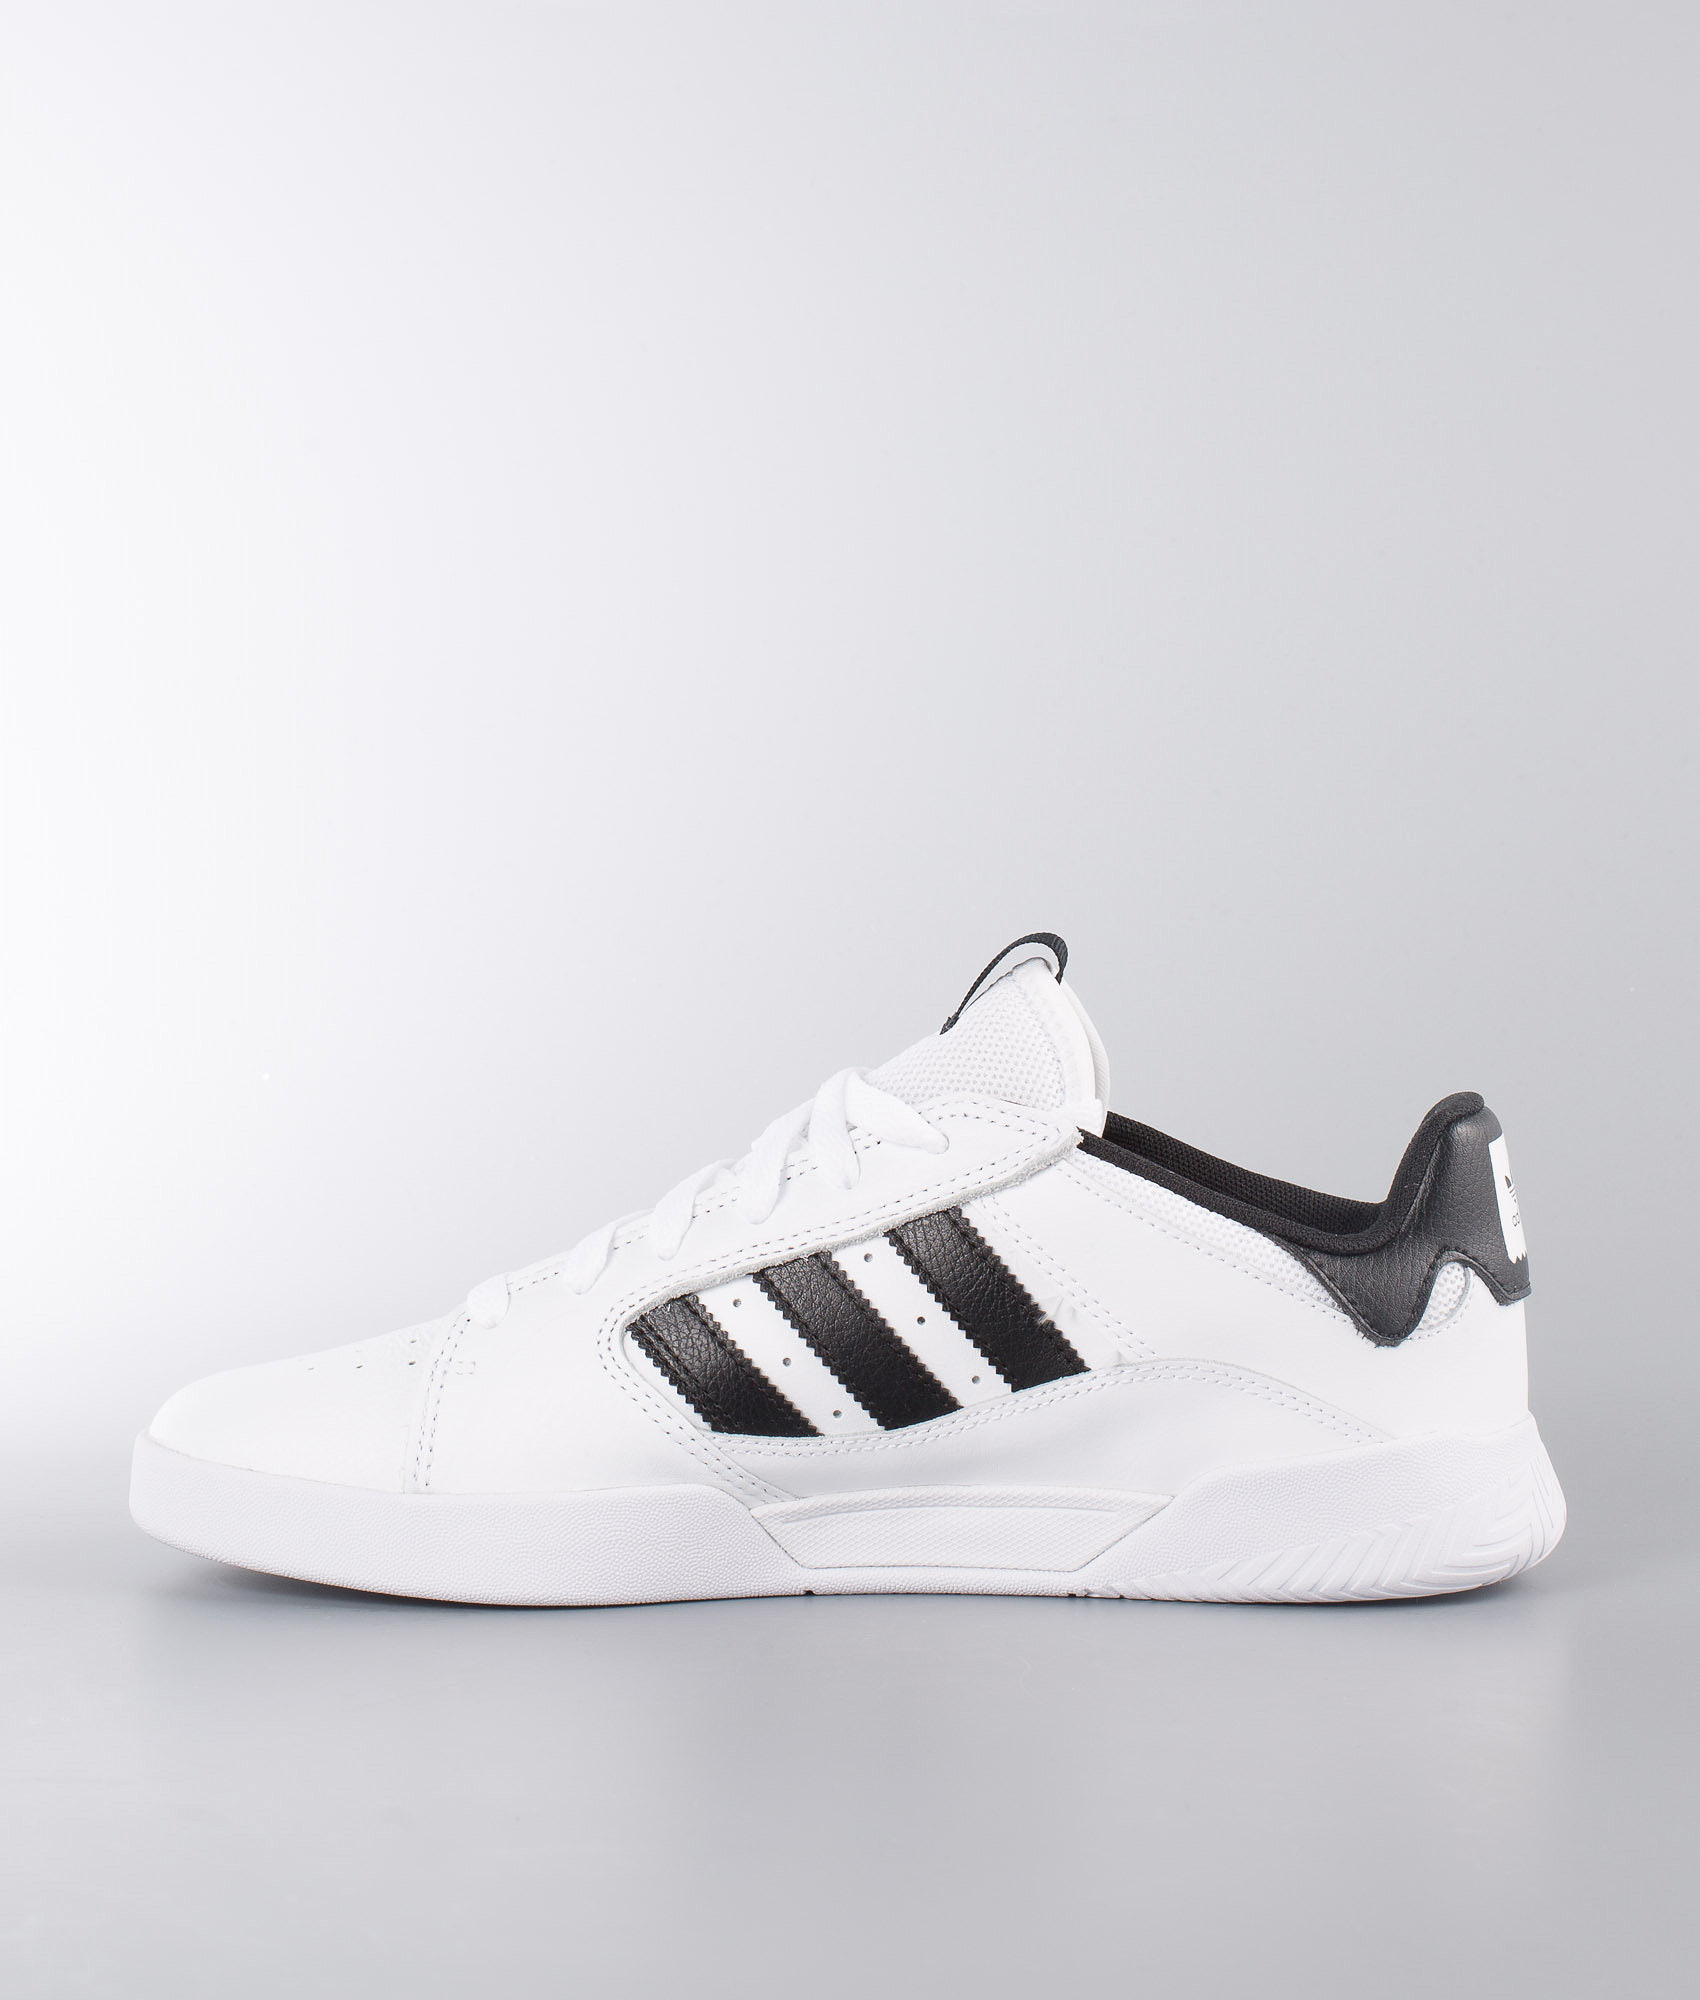 4a7ad6ff122d65 Adidas Skateboarding VRX Low Schuhe Ftwr White Core Black Ftwr White ...